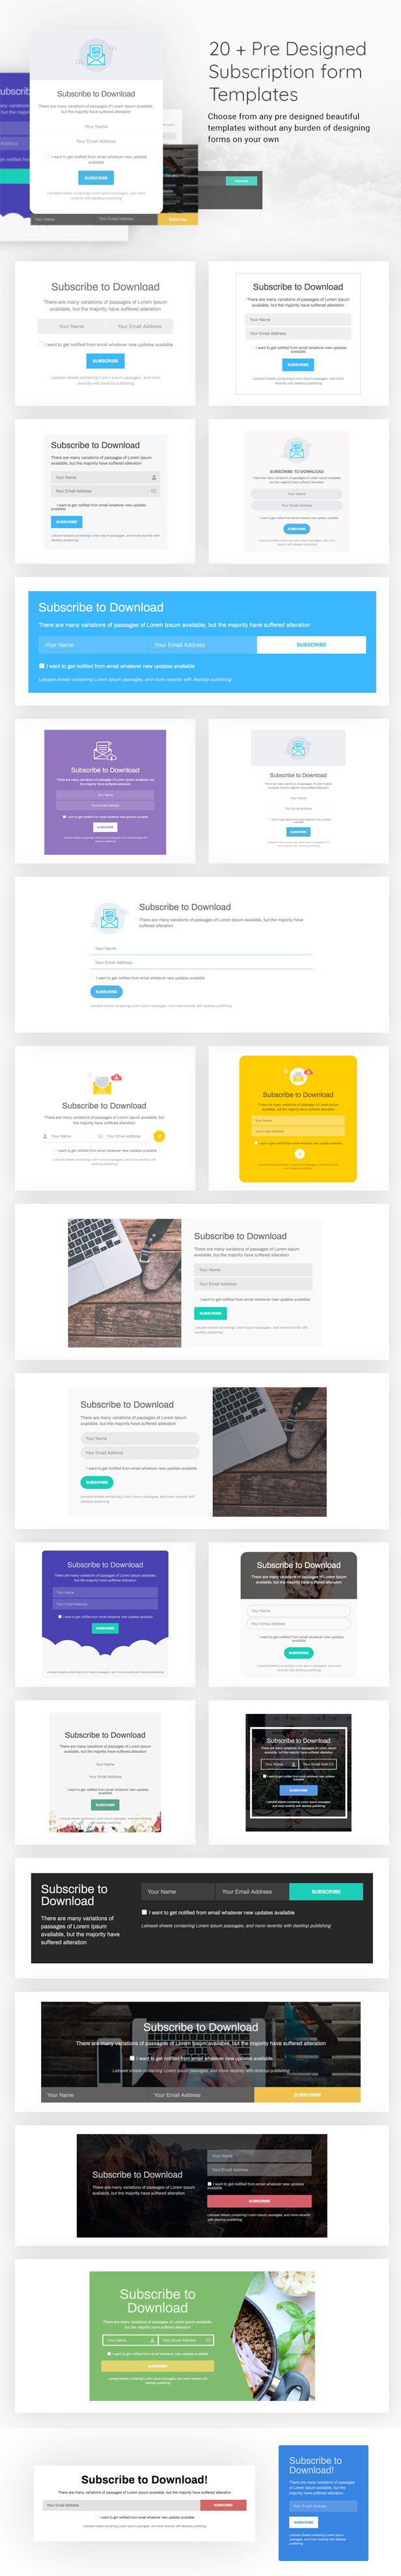 Subscribe to Download - An advanced subscription plugin for WordPress - 8